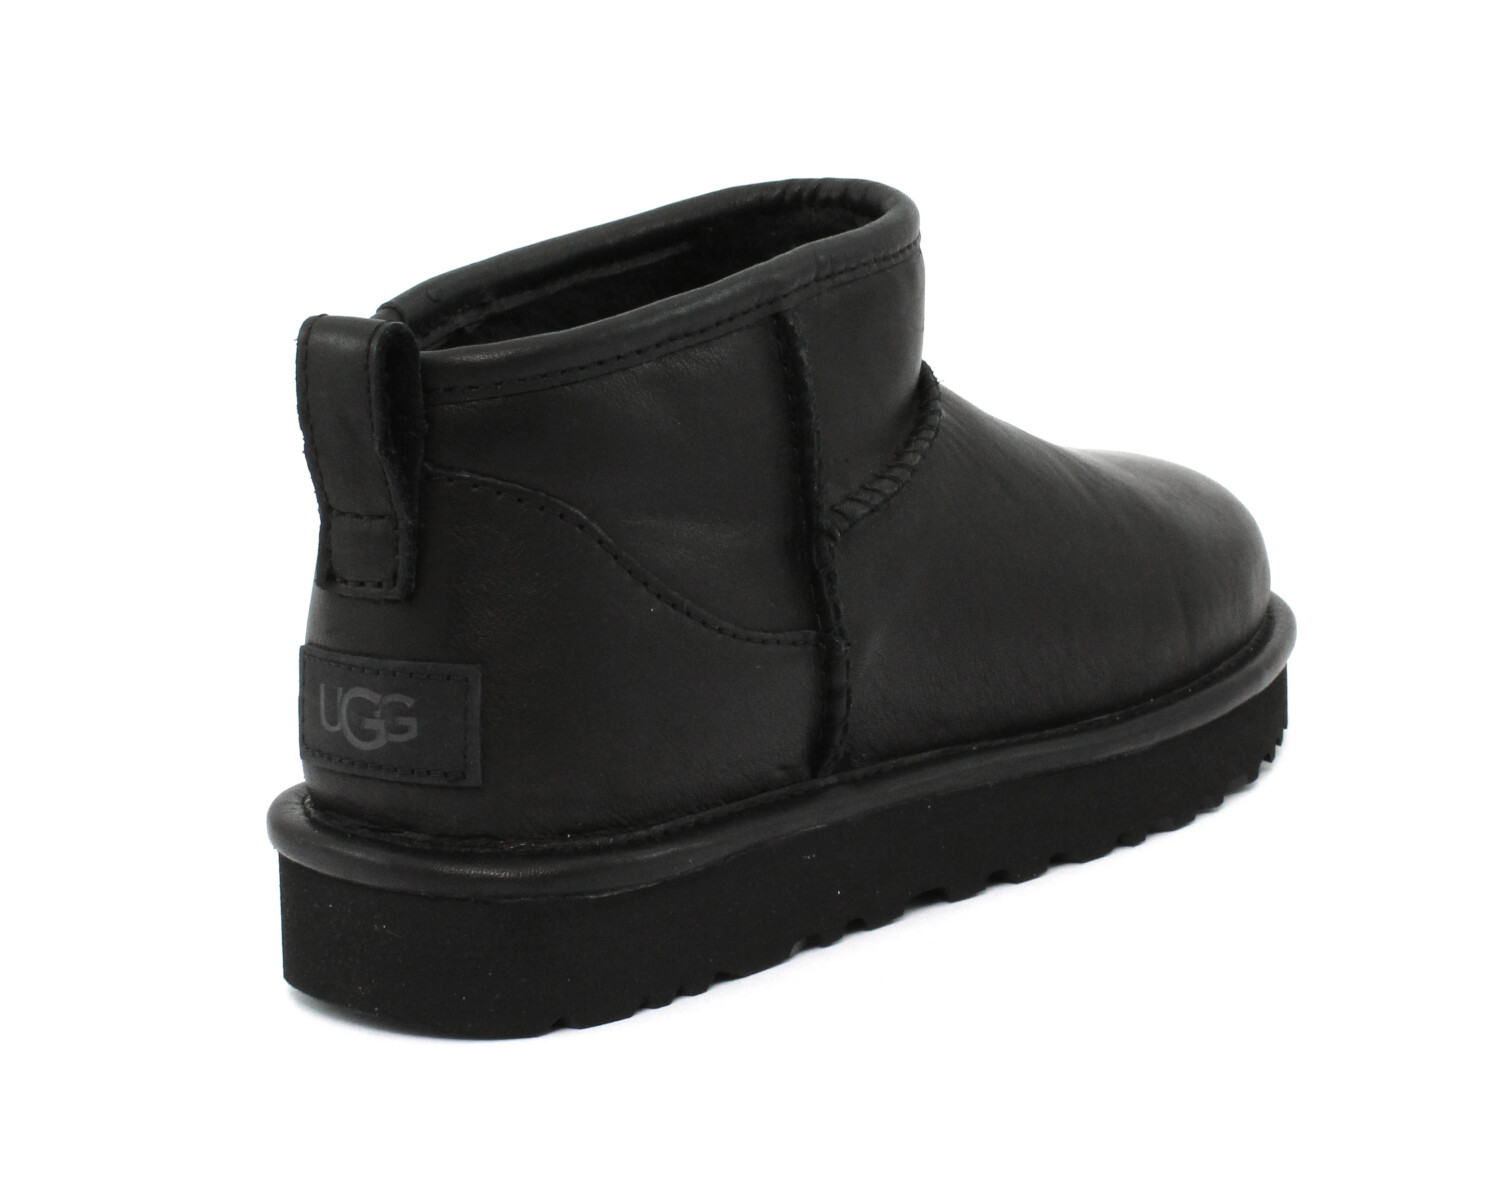 Stivaletto UGG W CLASSIC ULTRA MINI BLACK 1117534